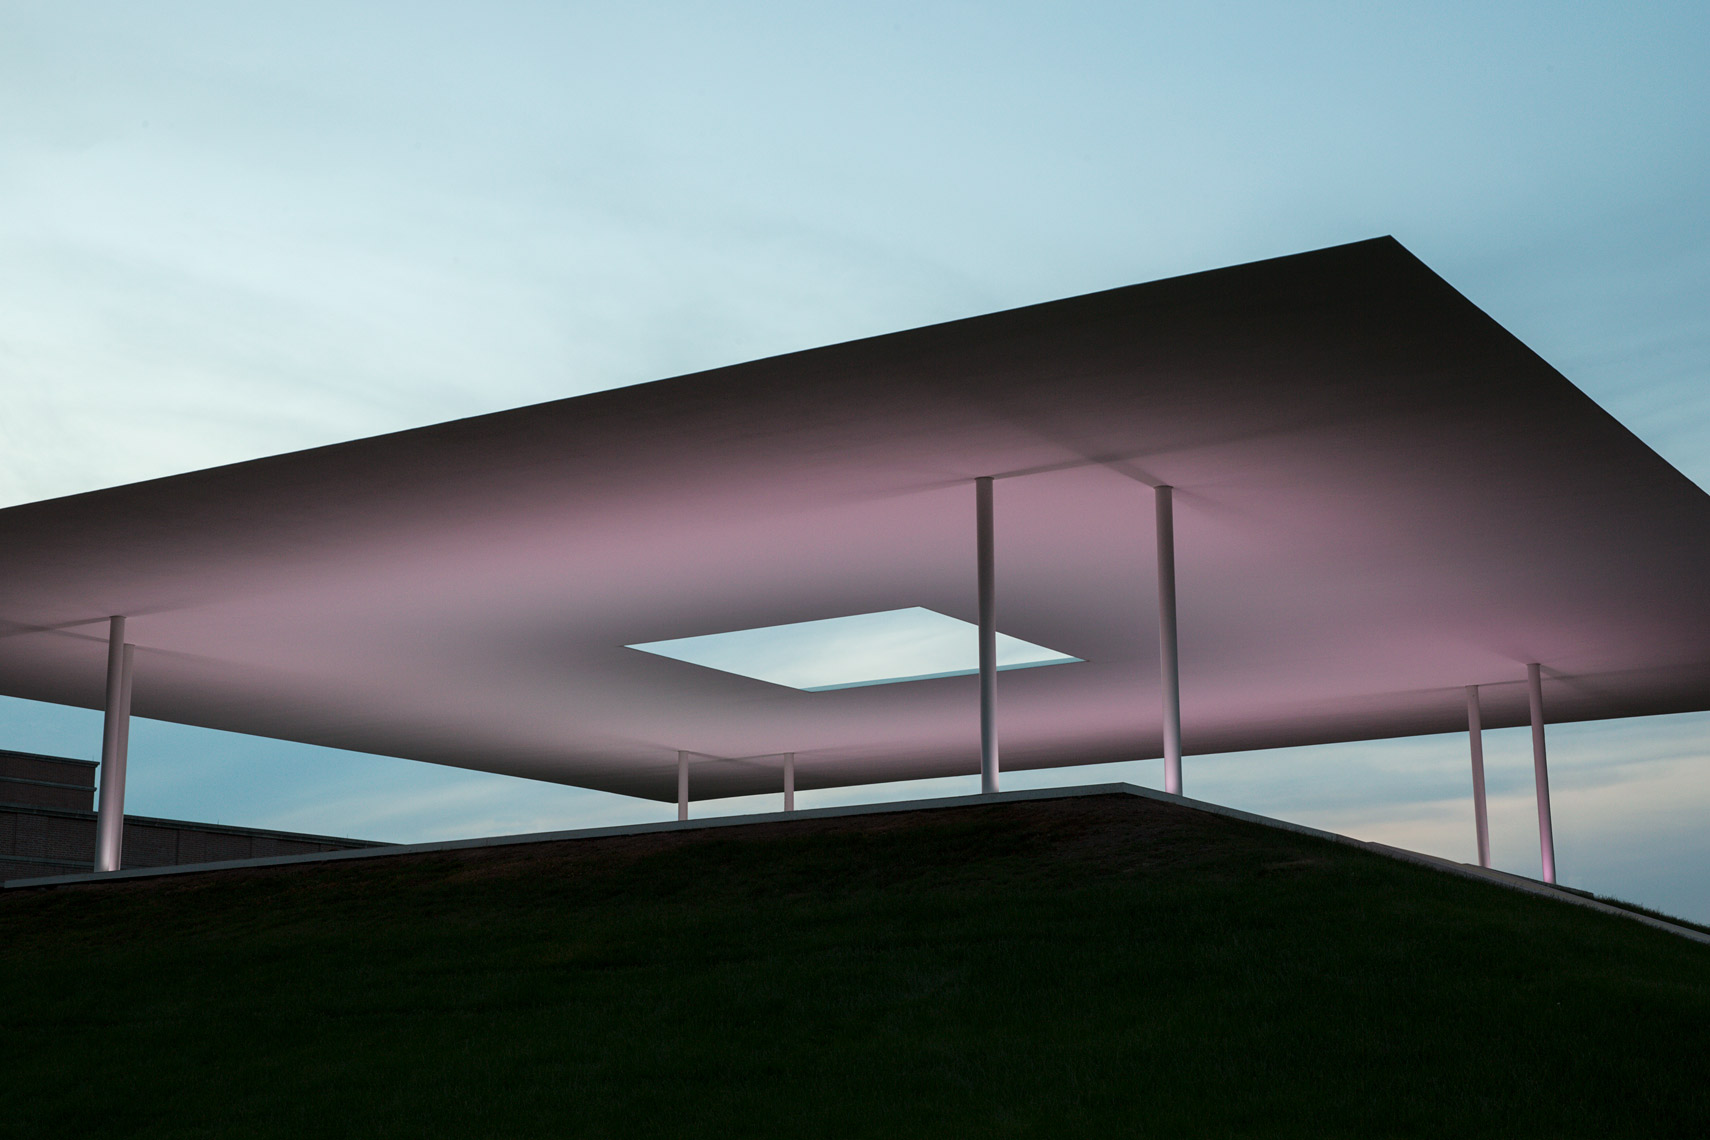 James-Turrell-Twilight-Epiphany-Skyspace-Rice-University-Poul-Ober-Photography